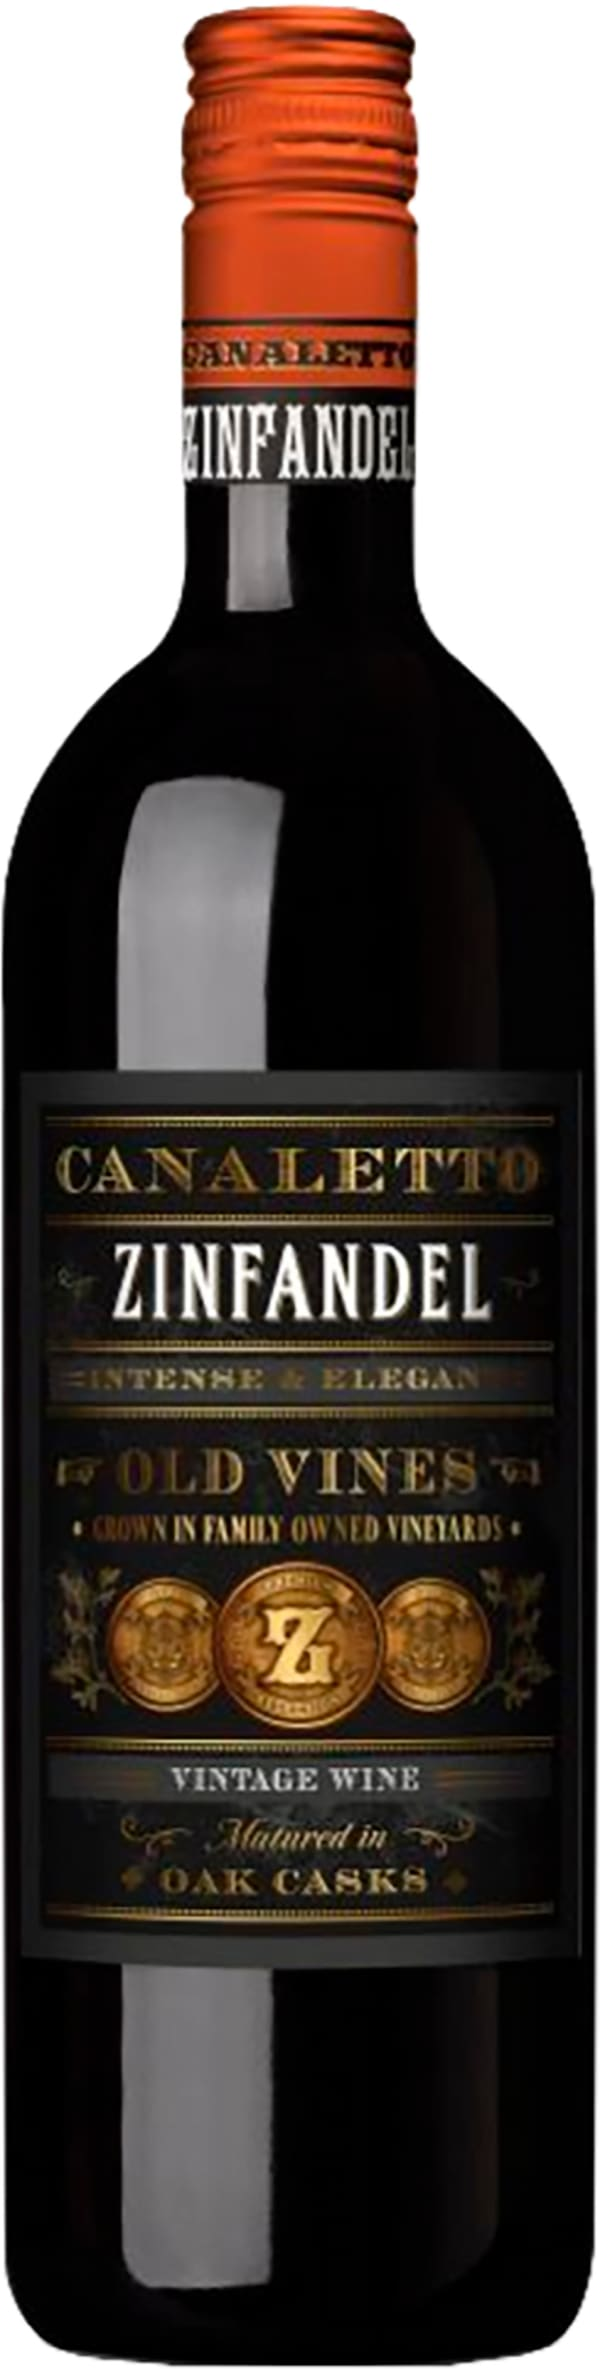 Canaletto Zinfandel 2016